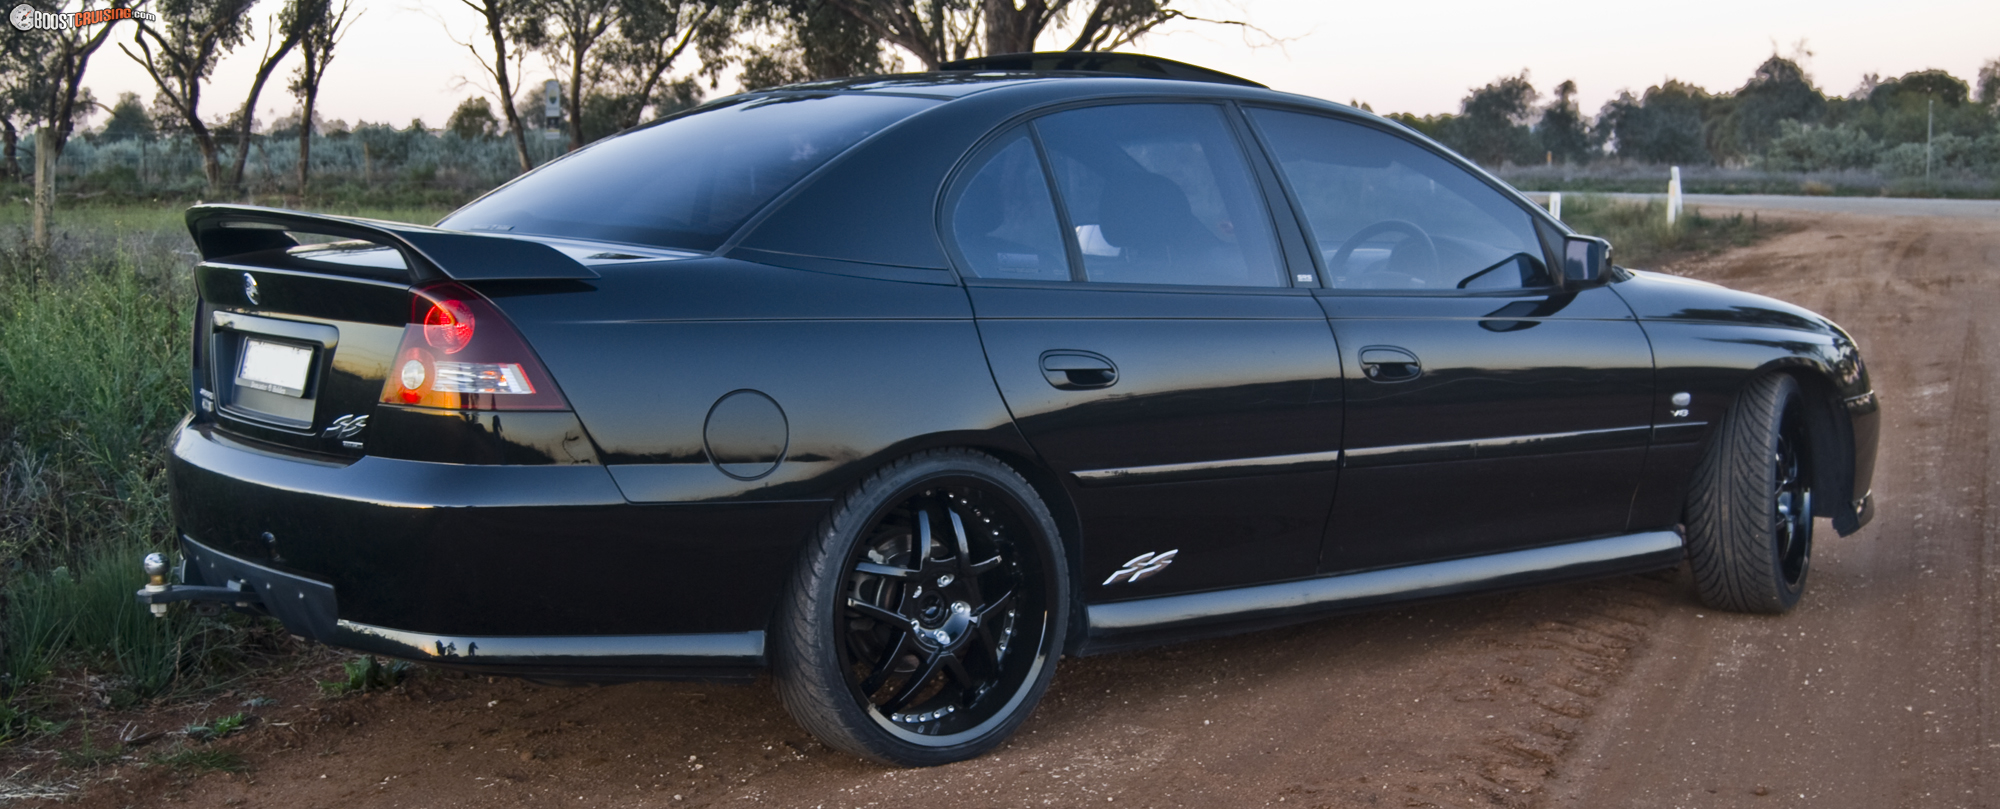 2004 Holden Commodore Vy Ss Series 2 6spd Boostcruising